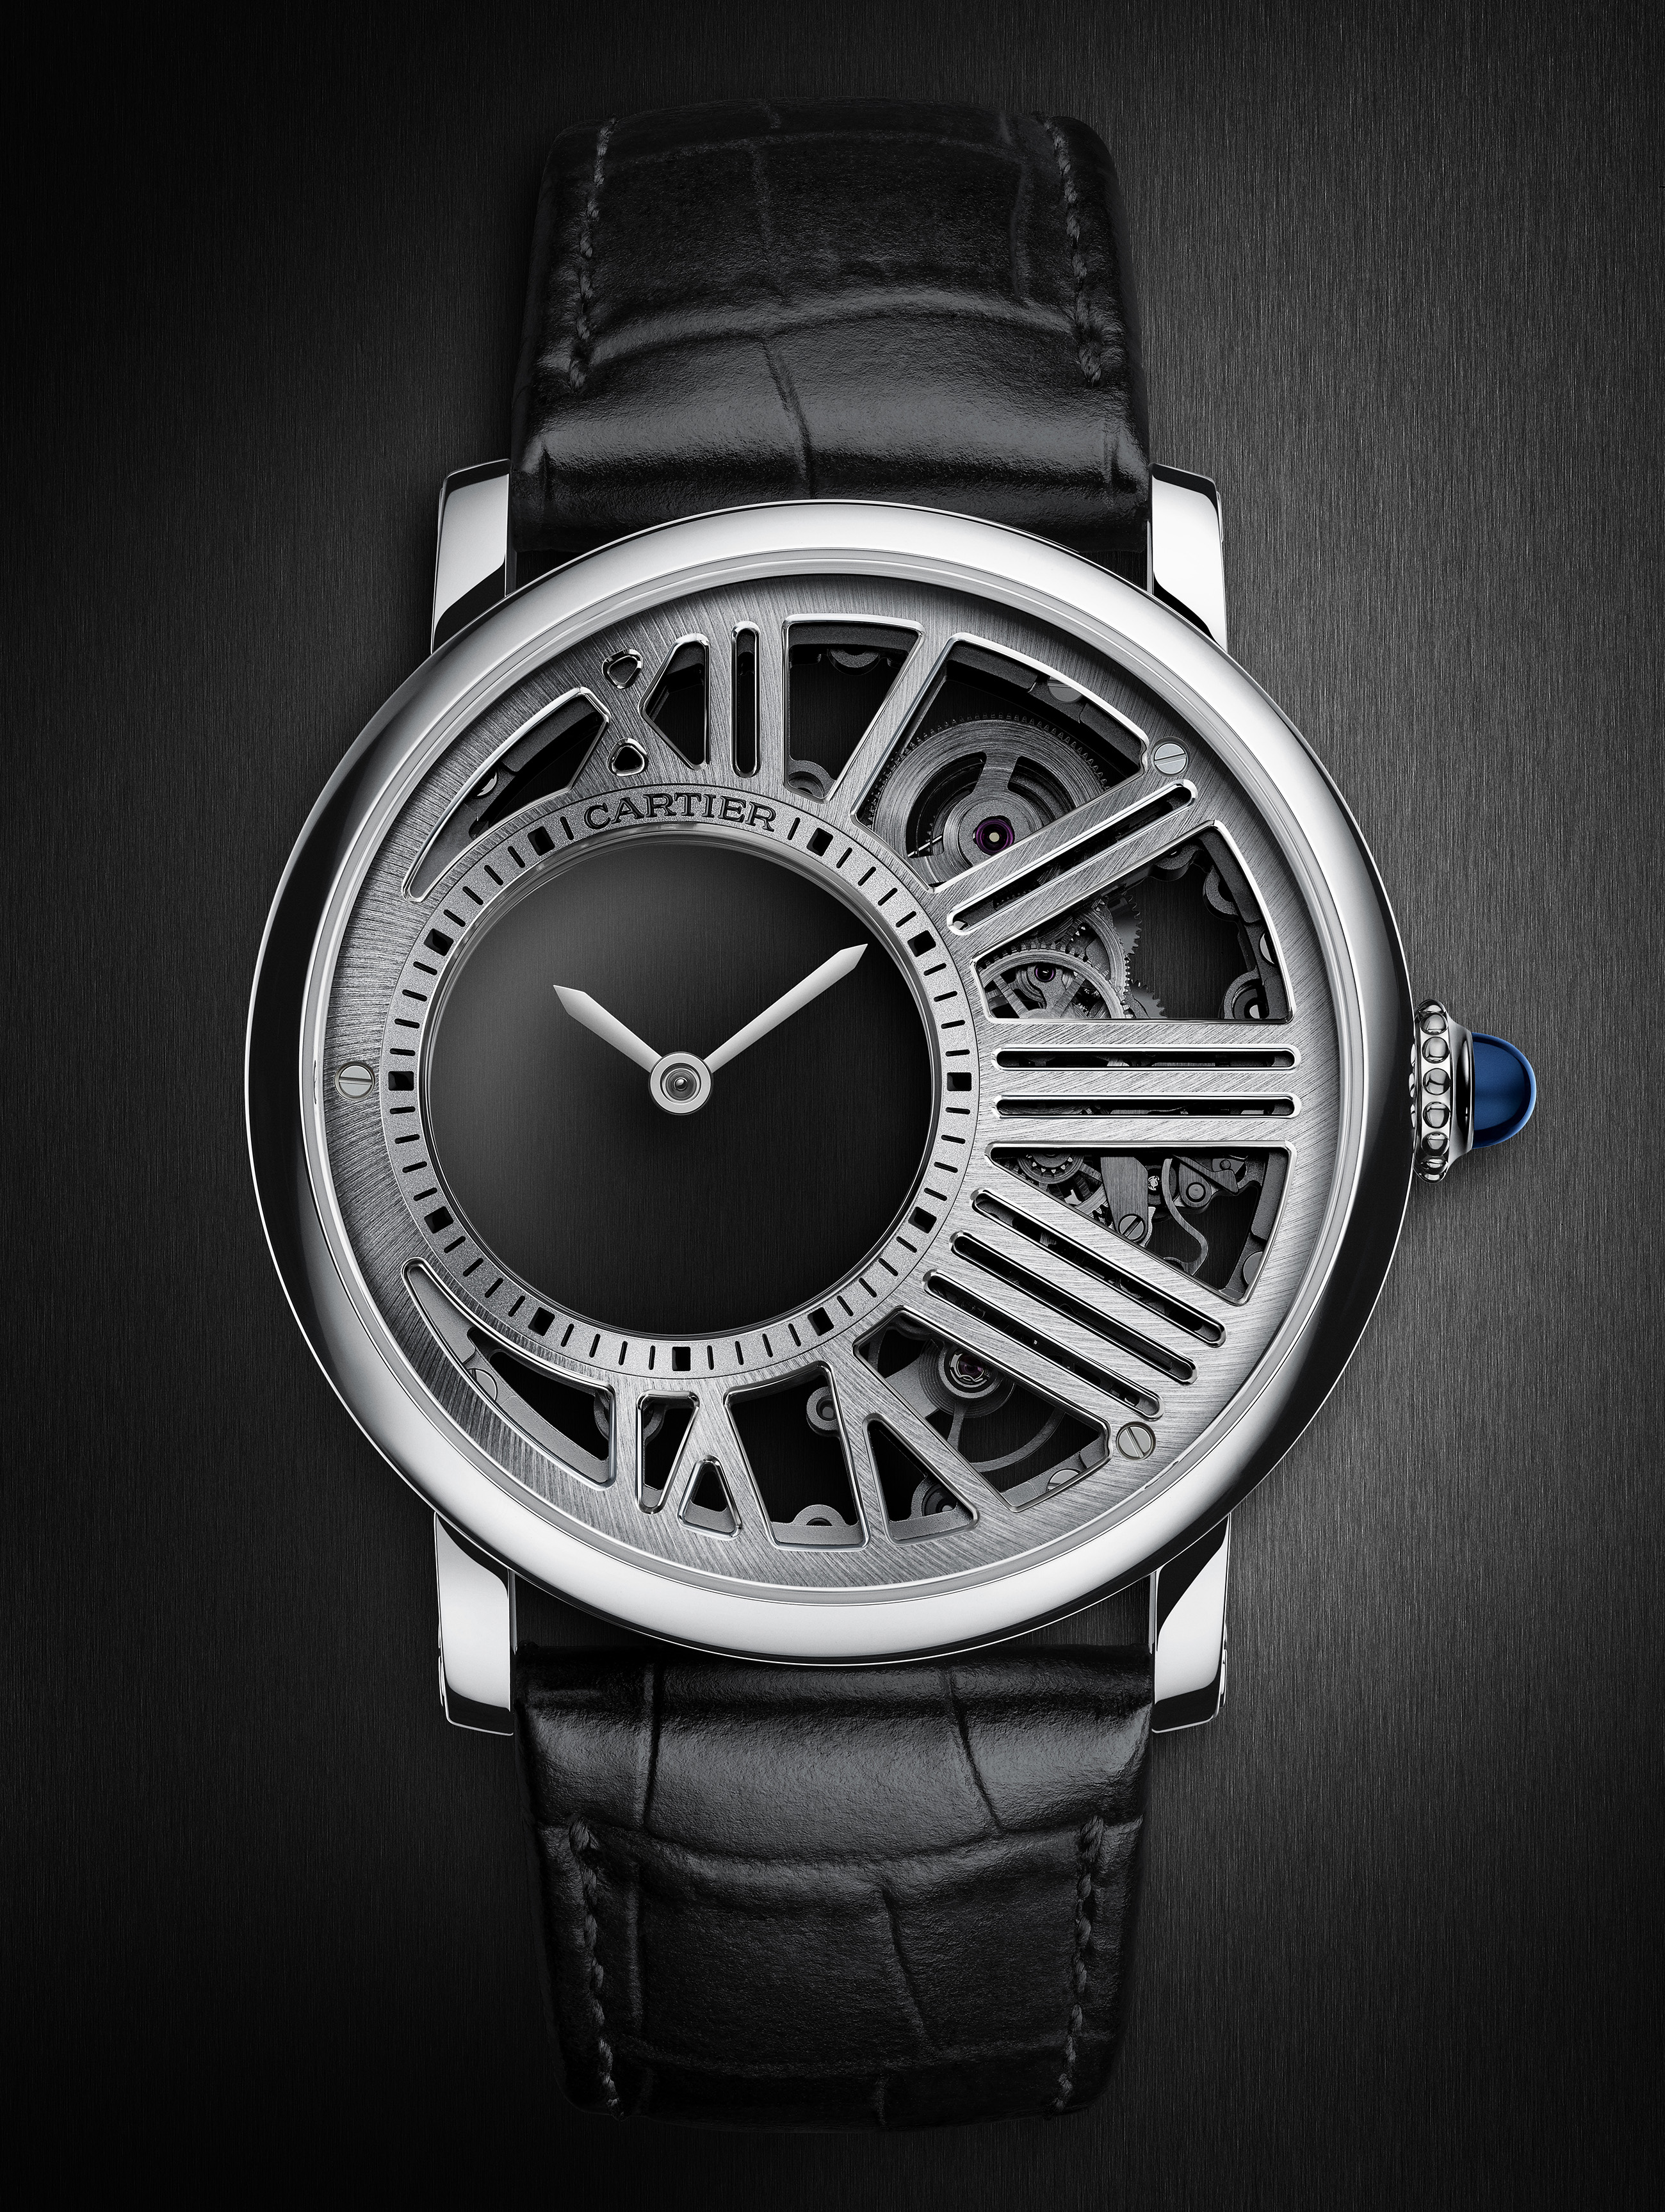 P:Prensa 2017PRESS RELEASES 201703_CARTIER_EXCEPTIONAL_WATCHES_SIHH2017IMAGESHIGH RES07_Mysterious_ Hour_watch_WHRO0014 copy.jpg